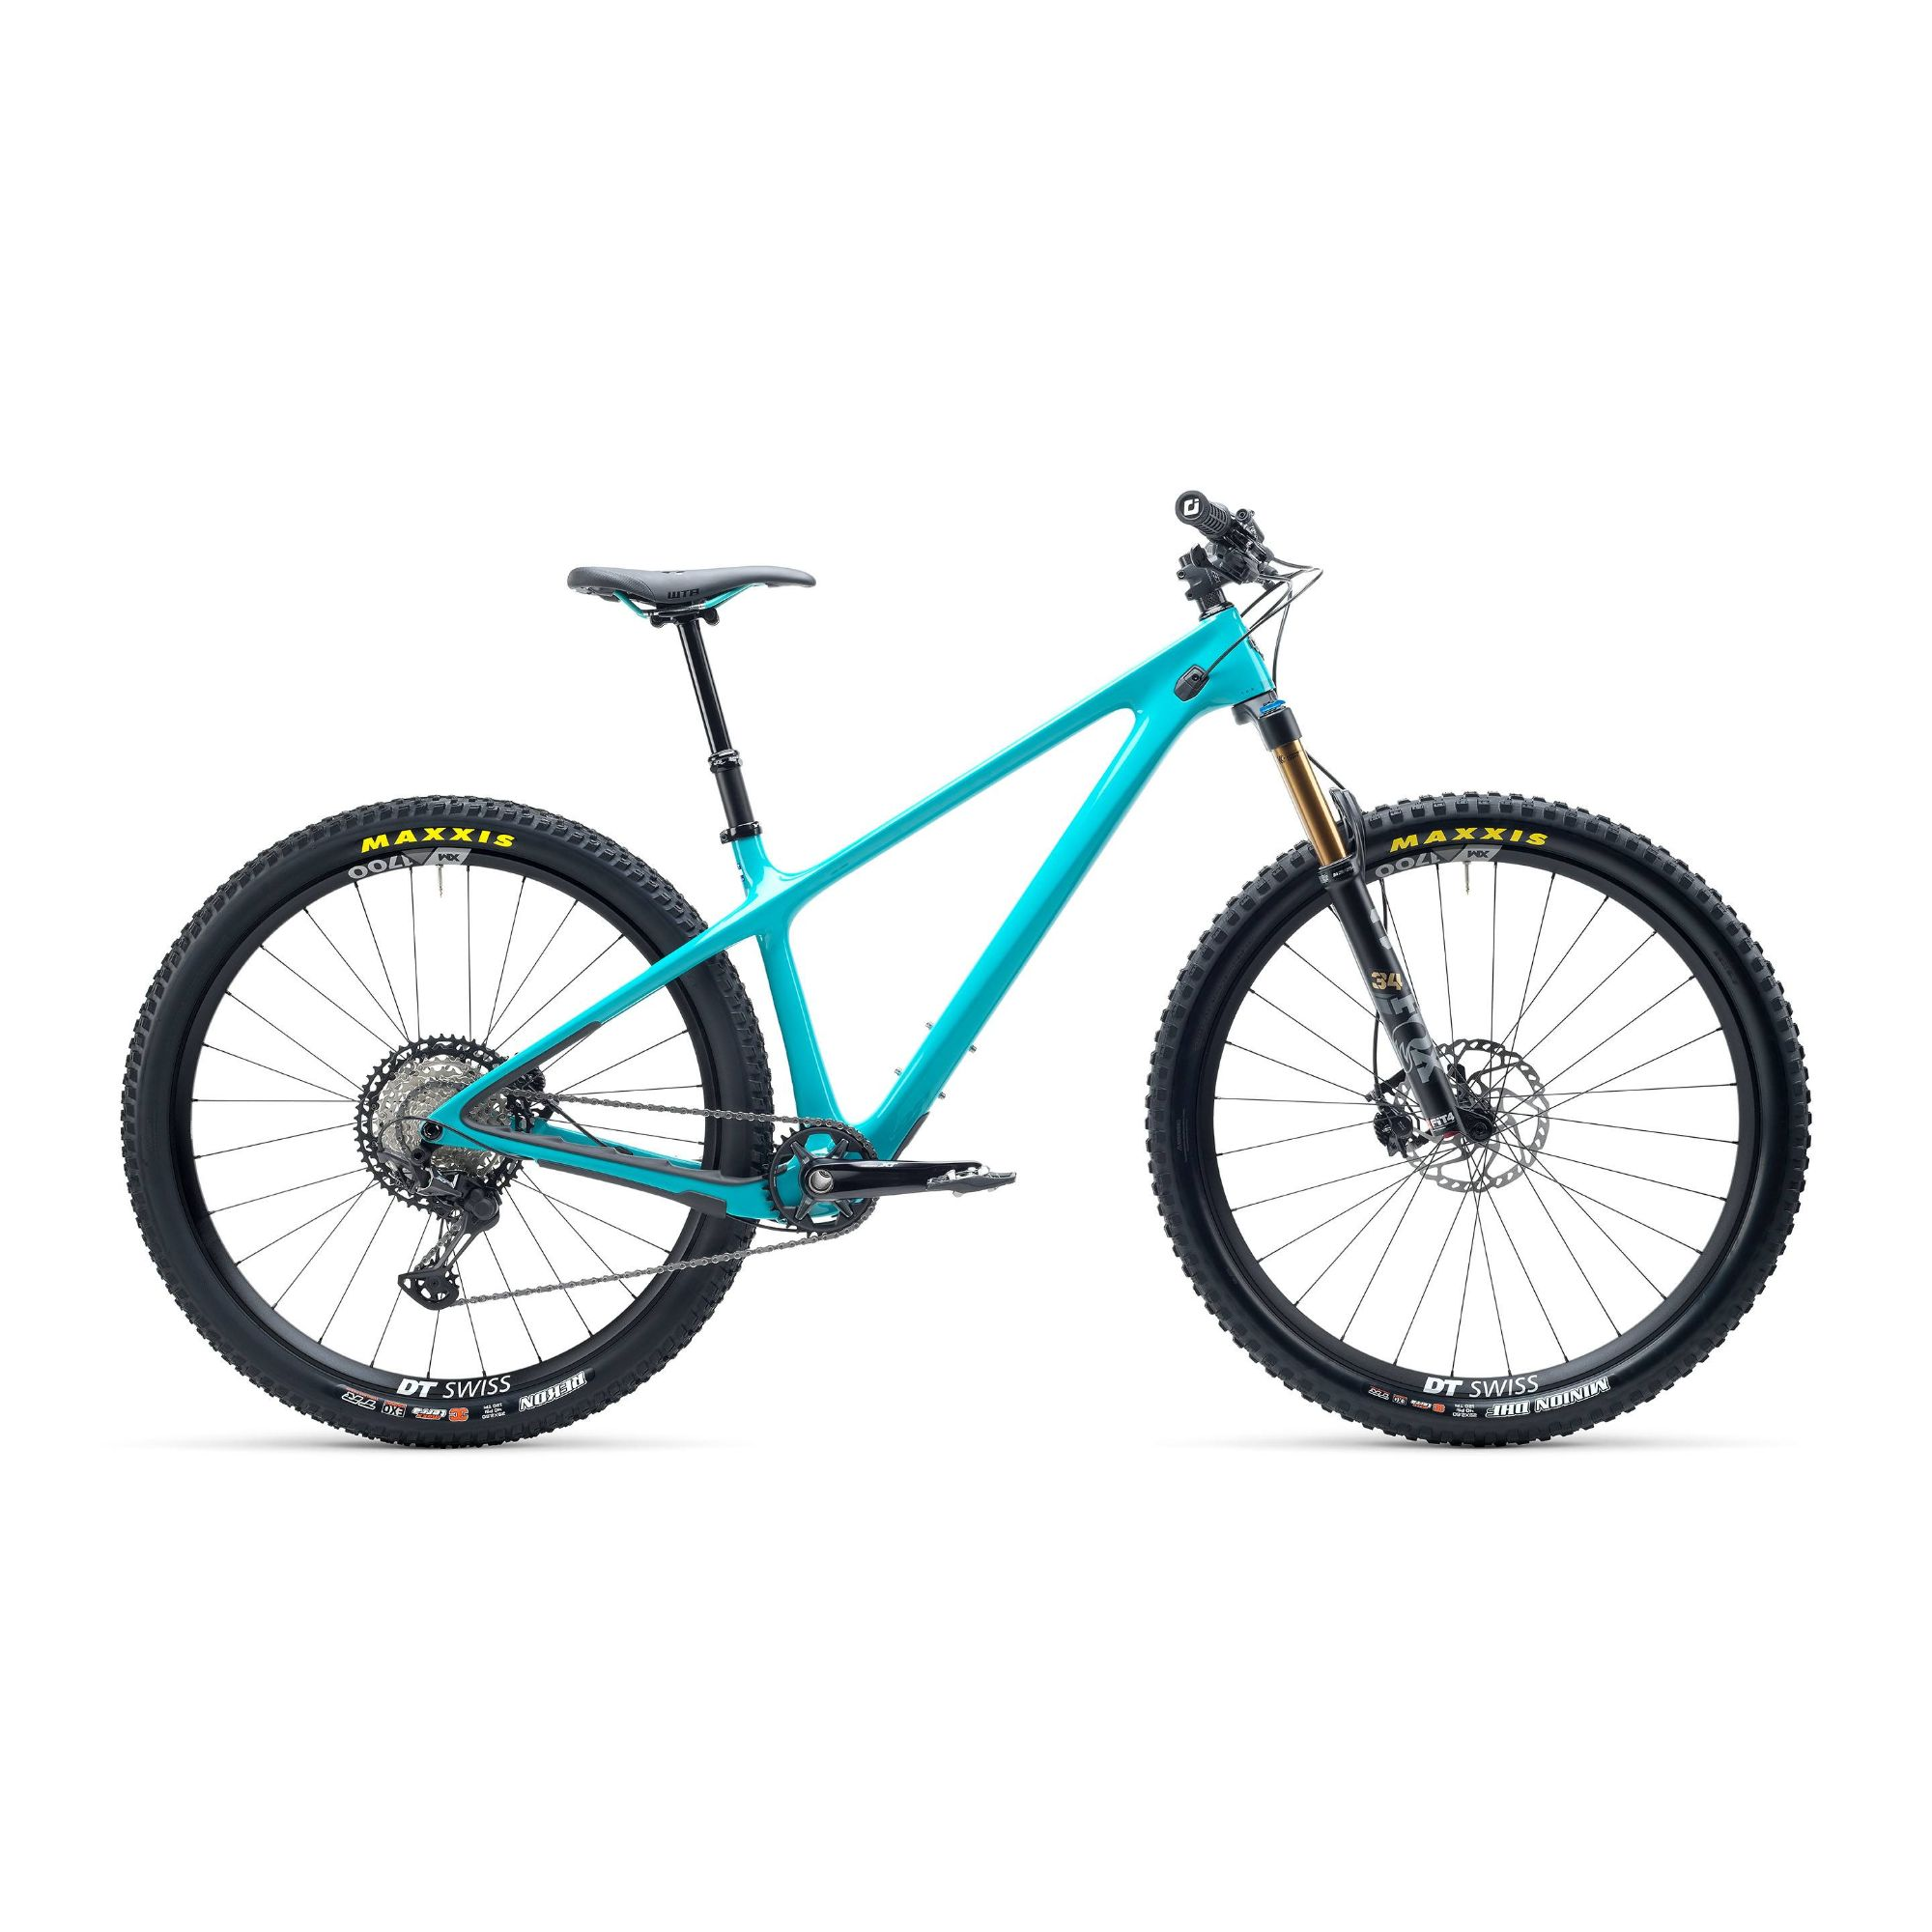 Yeti ARC T Series T1 29er XT Carbon Mountain Bike 2021 Turquoise